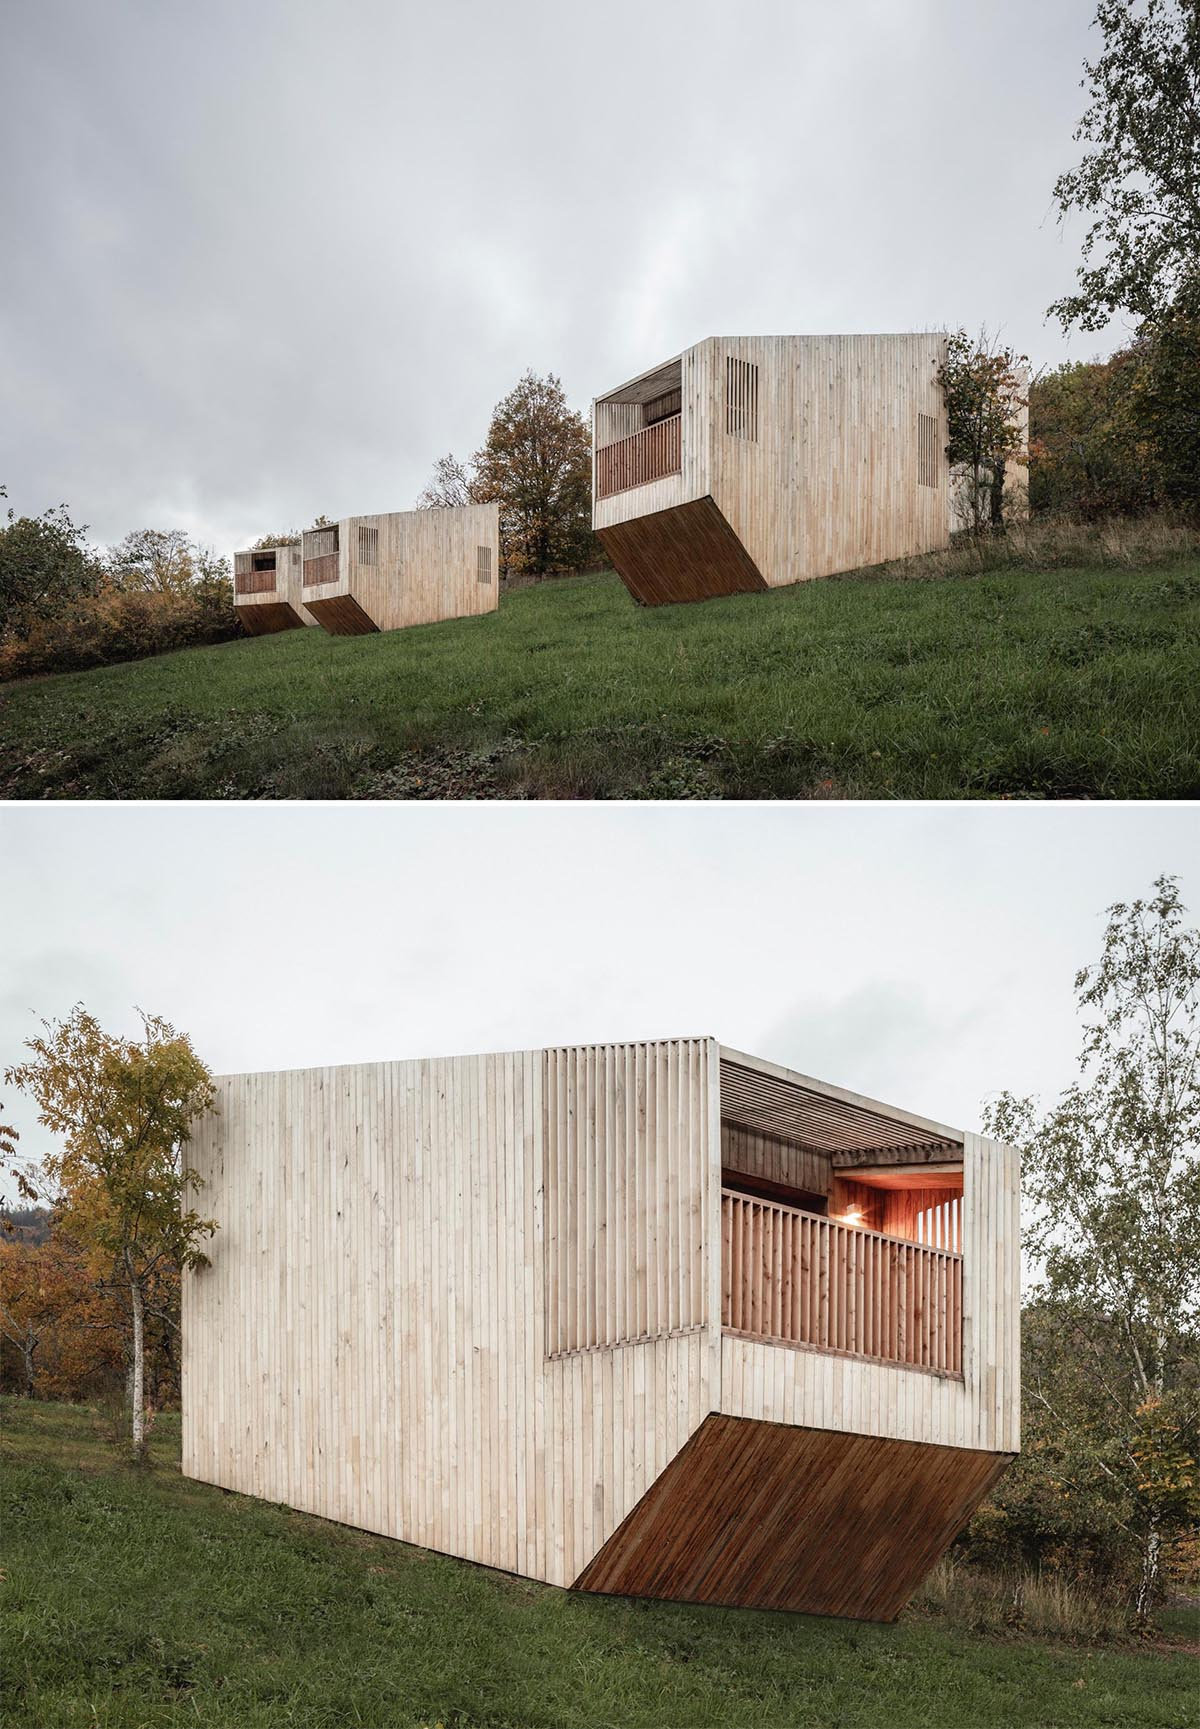 Small wood cabins designed as hotel rooms.